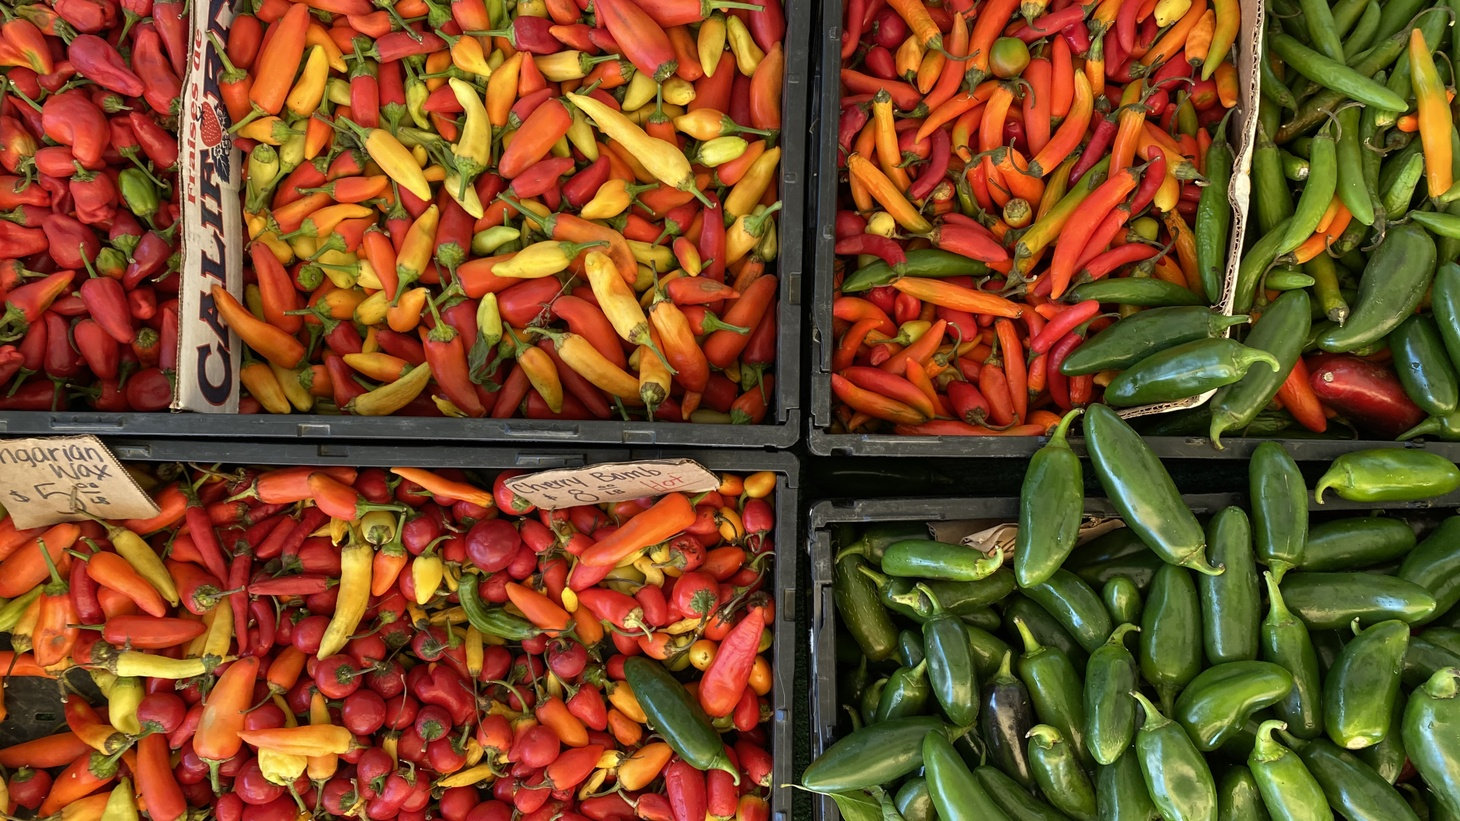 Luis Jaime of Jaime Farms started growing the Peruvian pepper, aji amarillo, at the request of chefs.